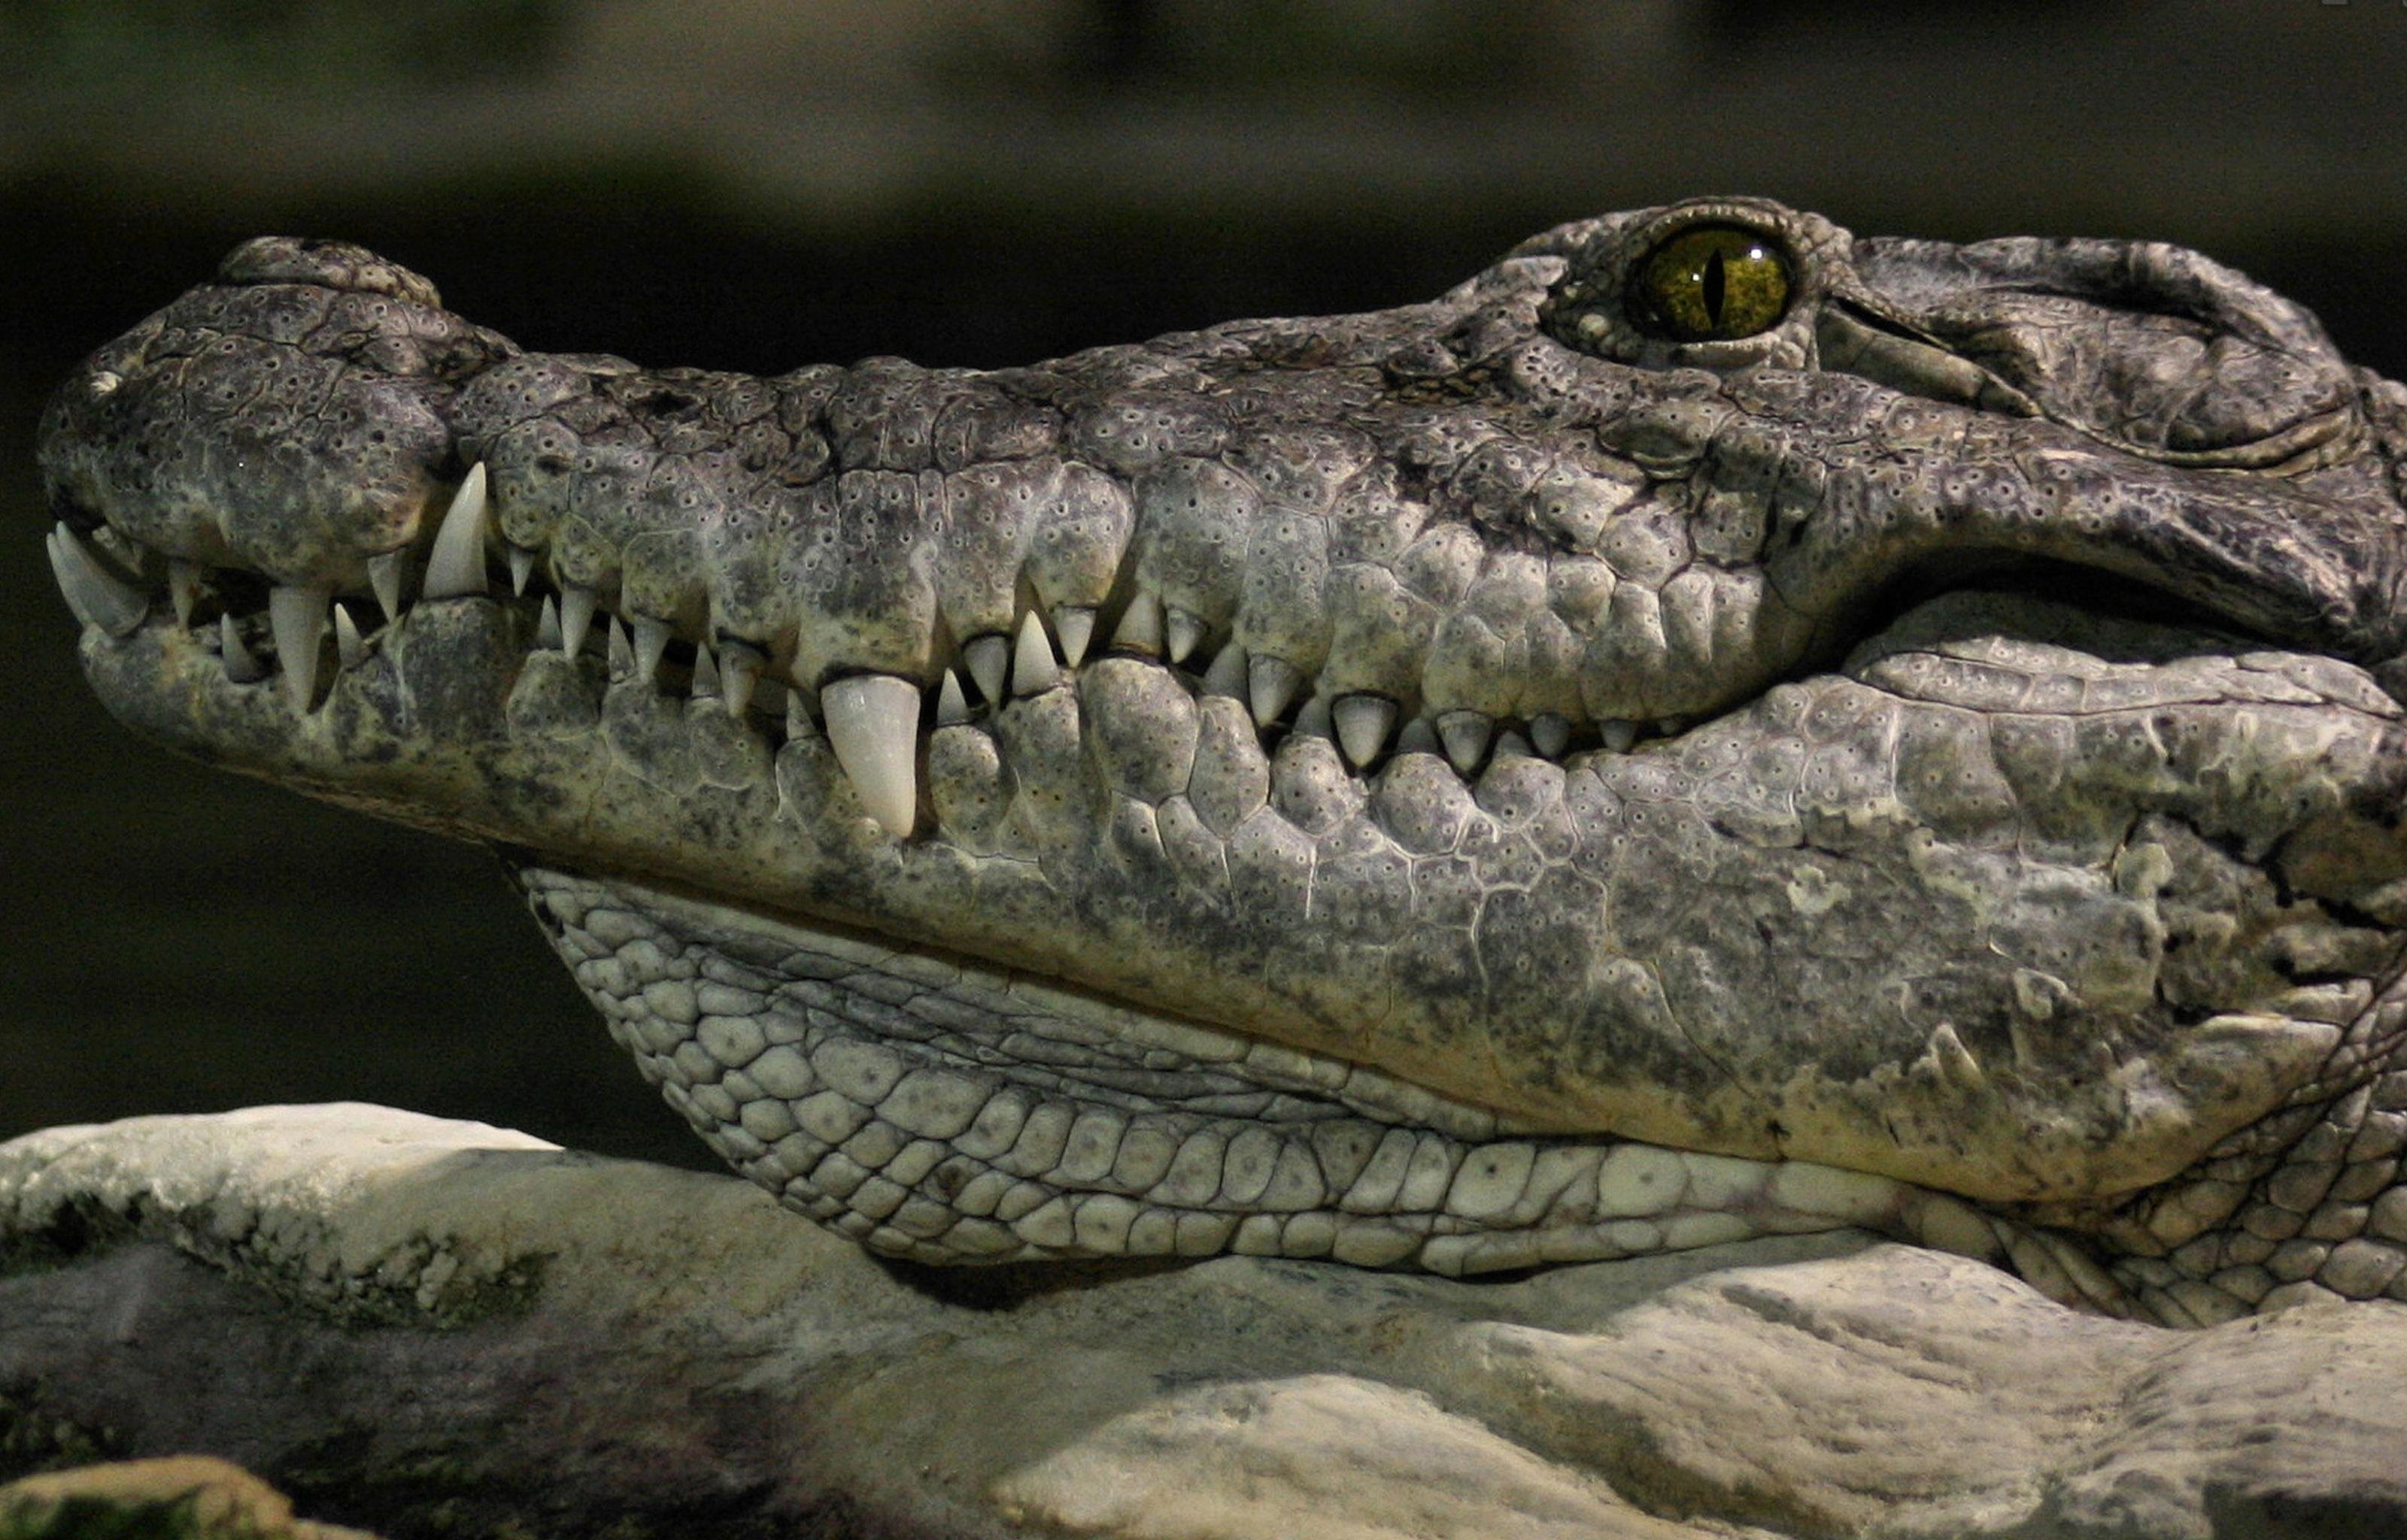 Best Crocodile wallpaper ID:278226 for High Resolution hd 3200x2048 computer